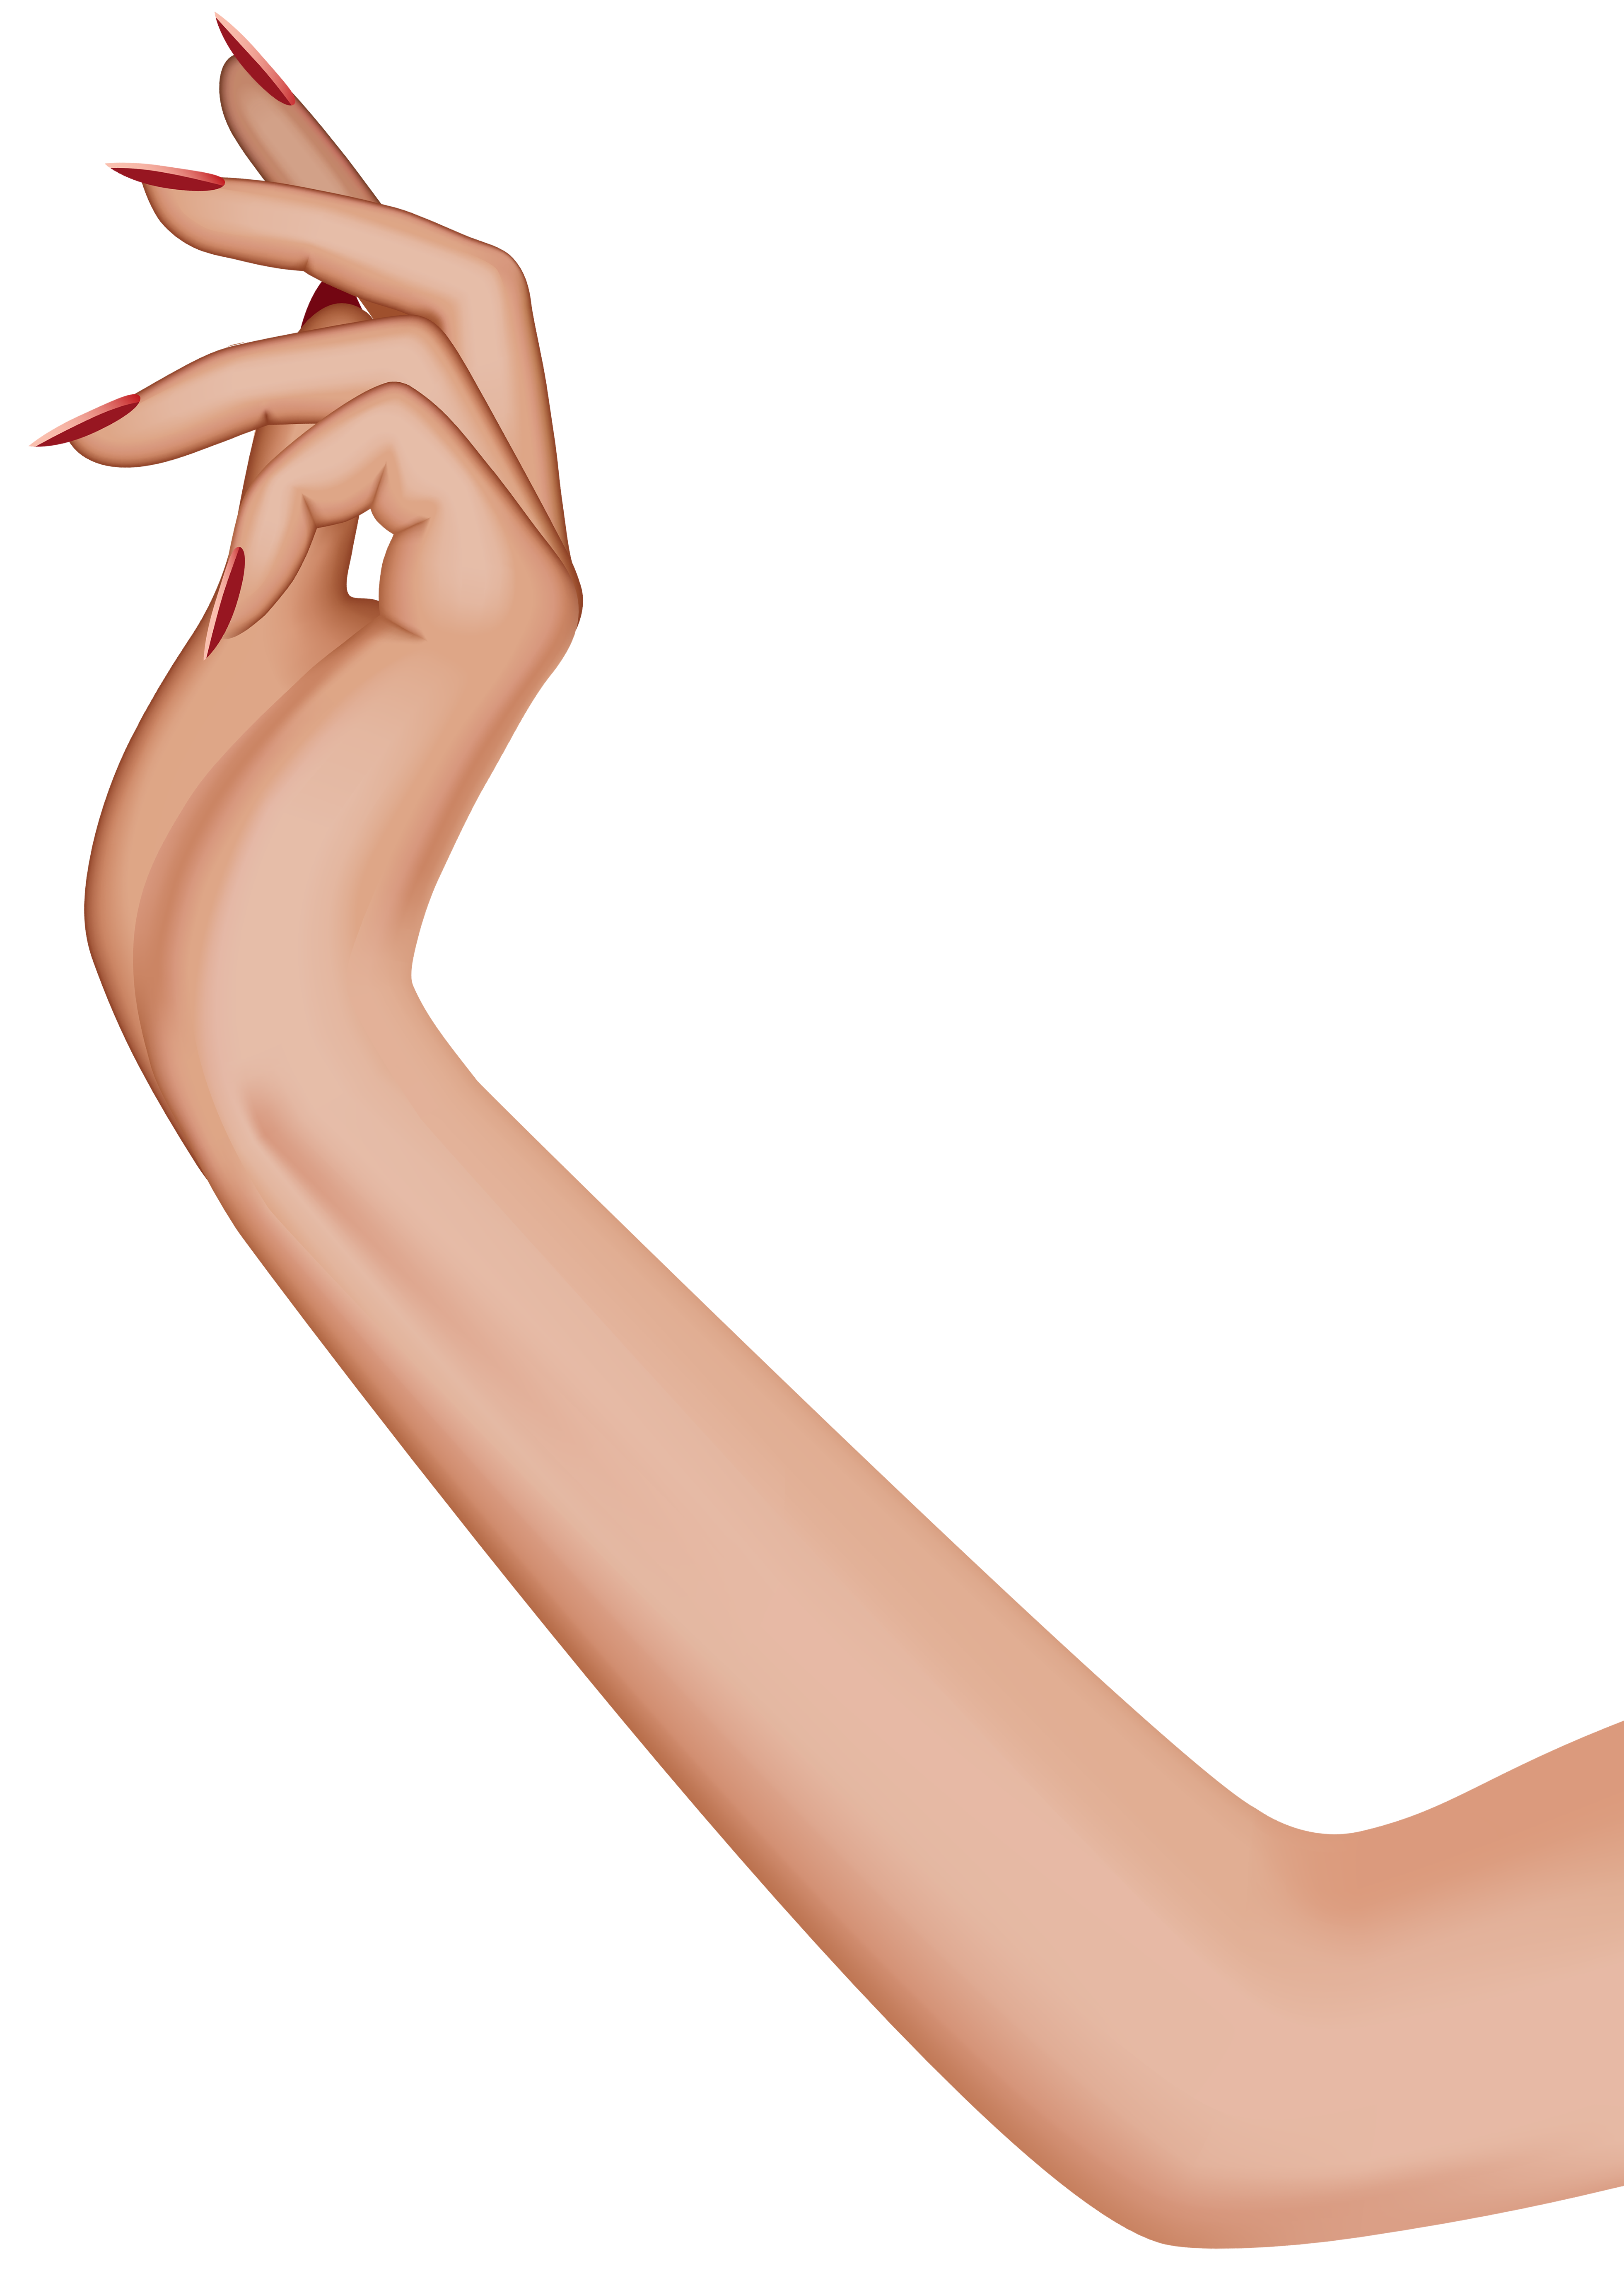 Female hand transparent clip. Girl arms png clip royalty free